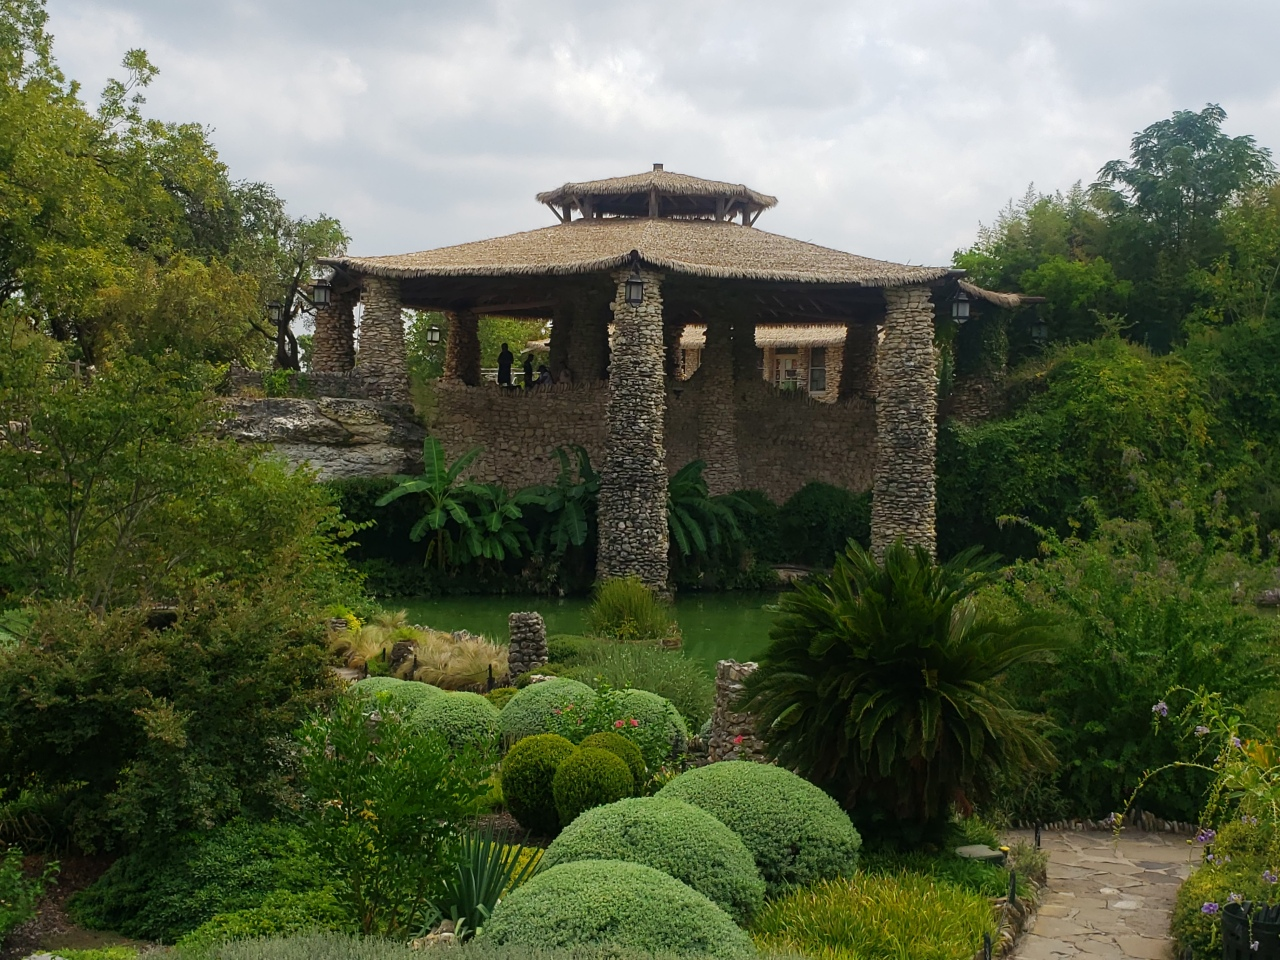 Japanese Tea Garden in San Antonio, Texas